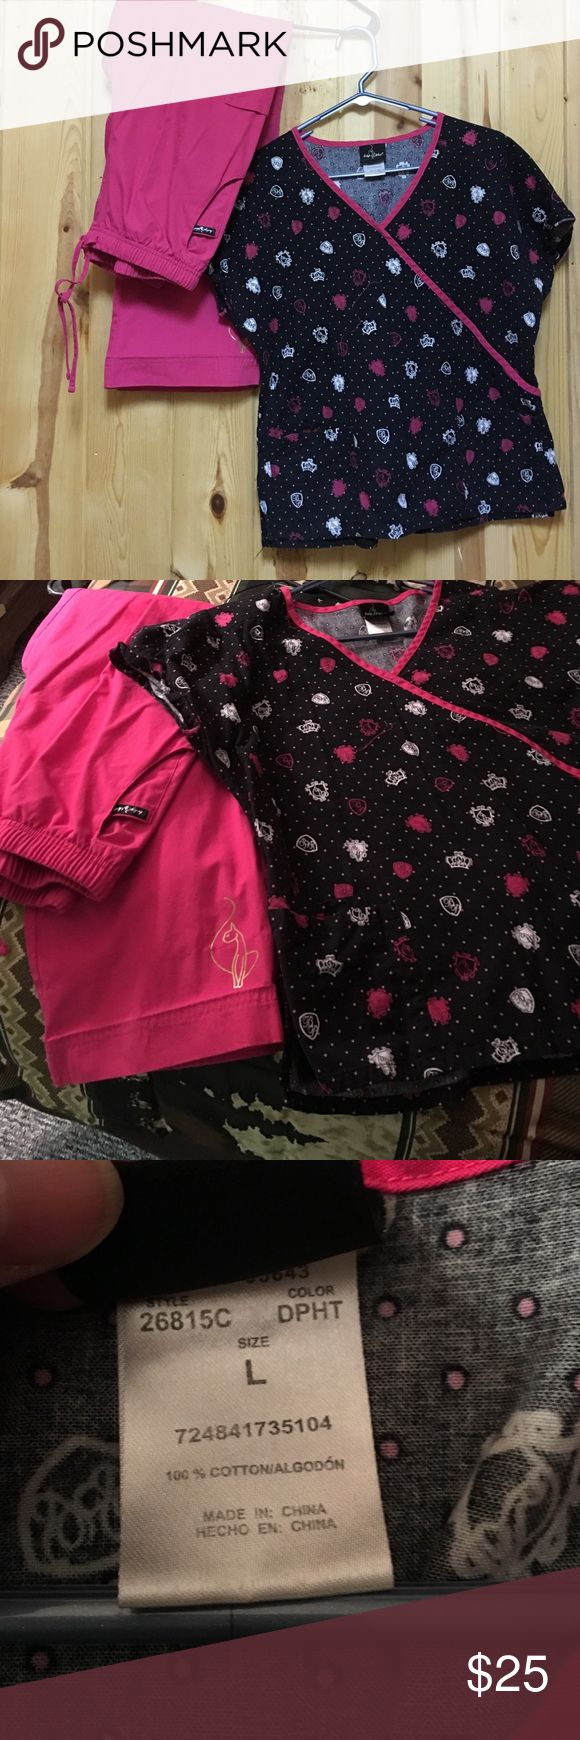 Baby Phat Scrub Set Small Pant Large/Medium Top Baby Phat Scrub Set Small Pant Large/Medium Top Good Used Condition Top fits more like a medium Baby Phat Other